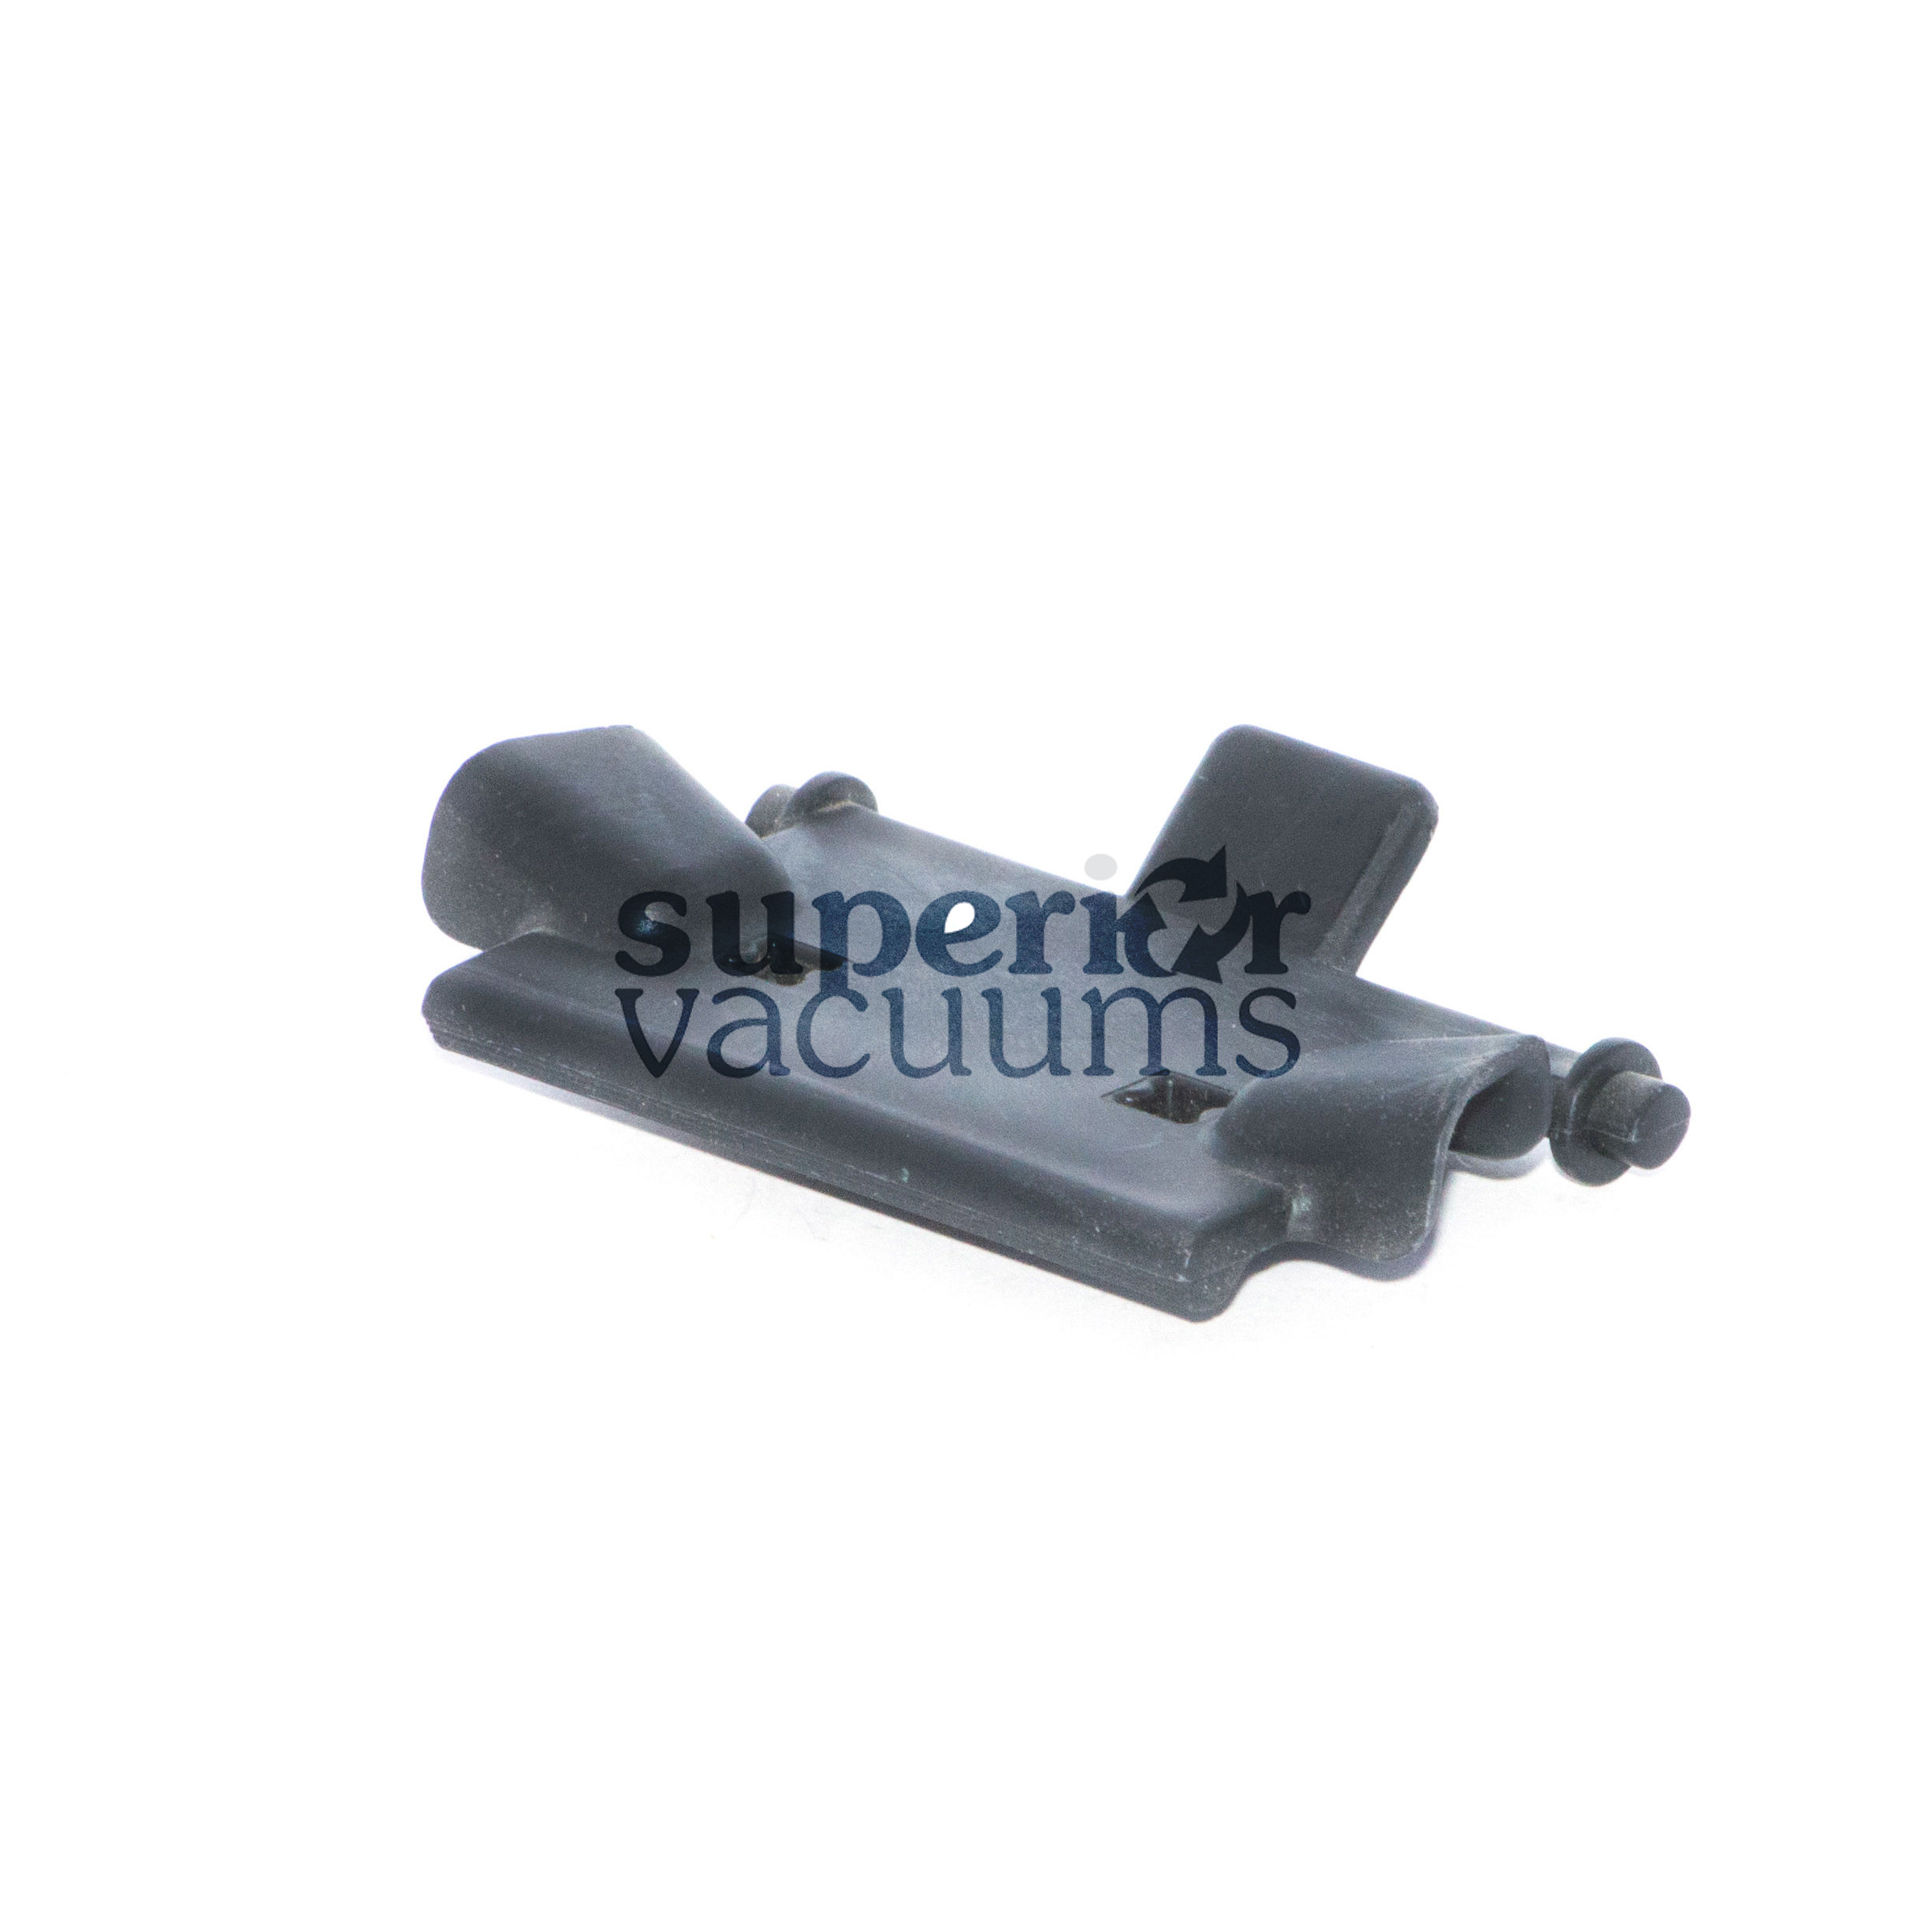 Bucket Clamps For Tubo Models Tx1A Tx2A Tx4A